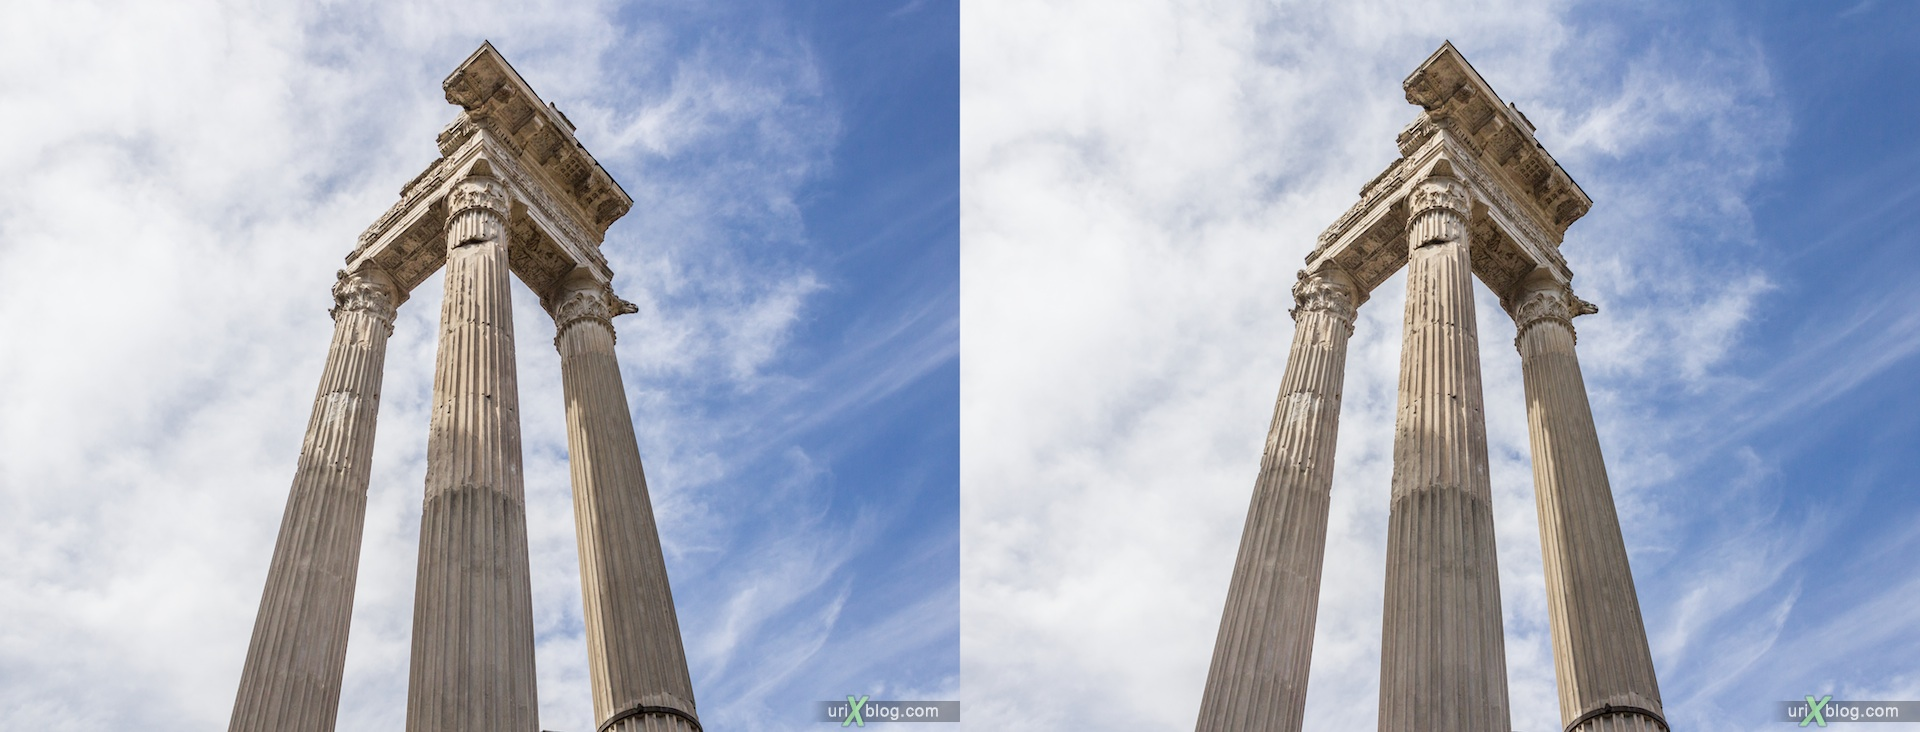 2012, Temple of Apollo Sosianus, Theater of Marcellus, Rome, Italy, 3D, stereo pair, cross-eyed, crossview, cross view stereo pair